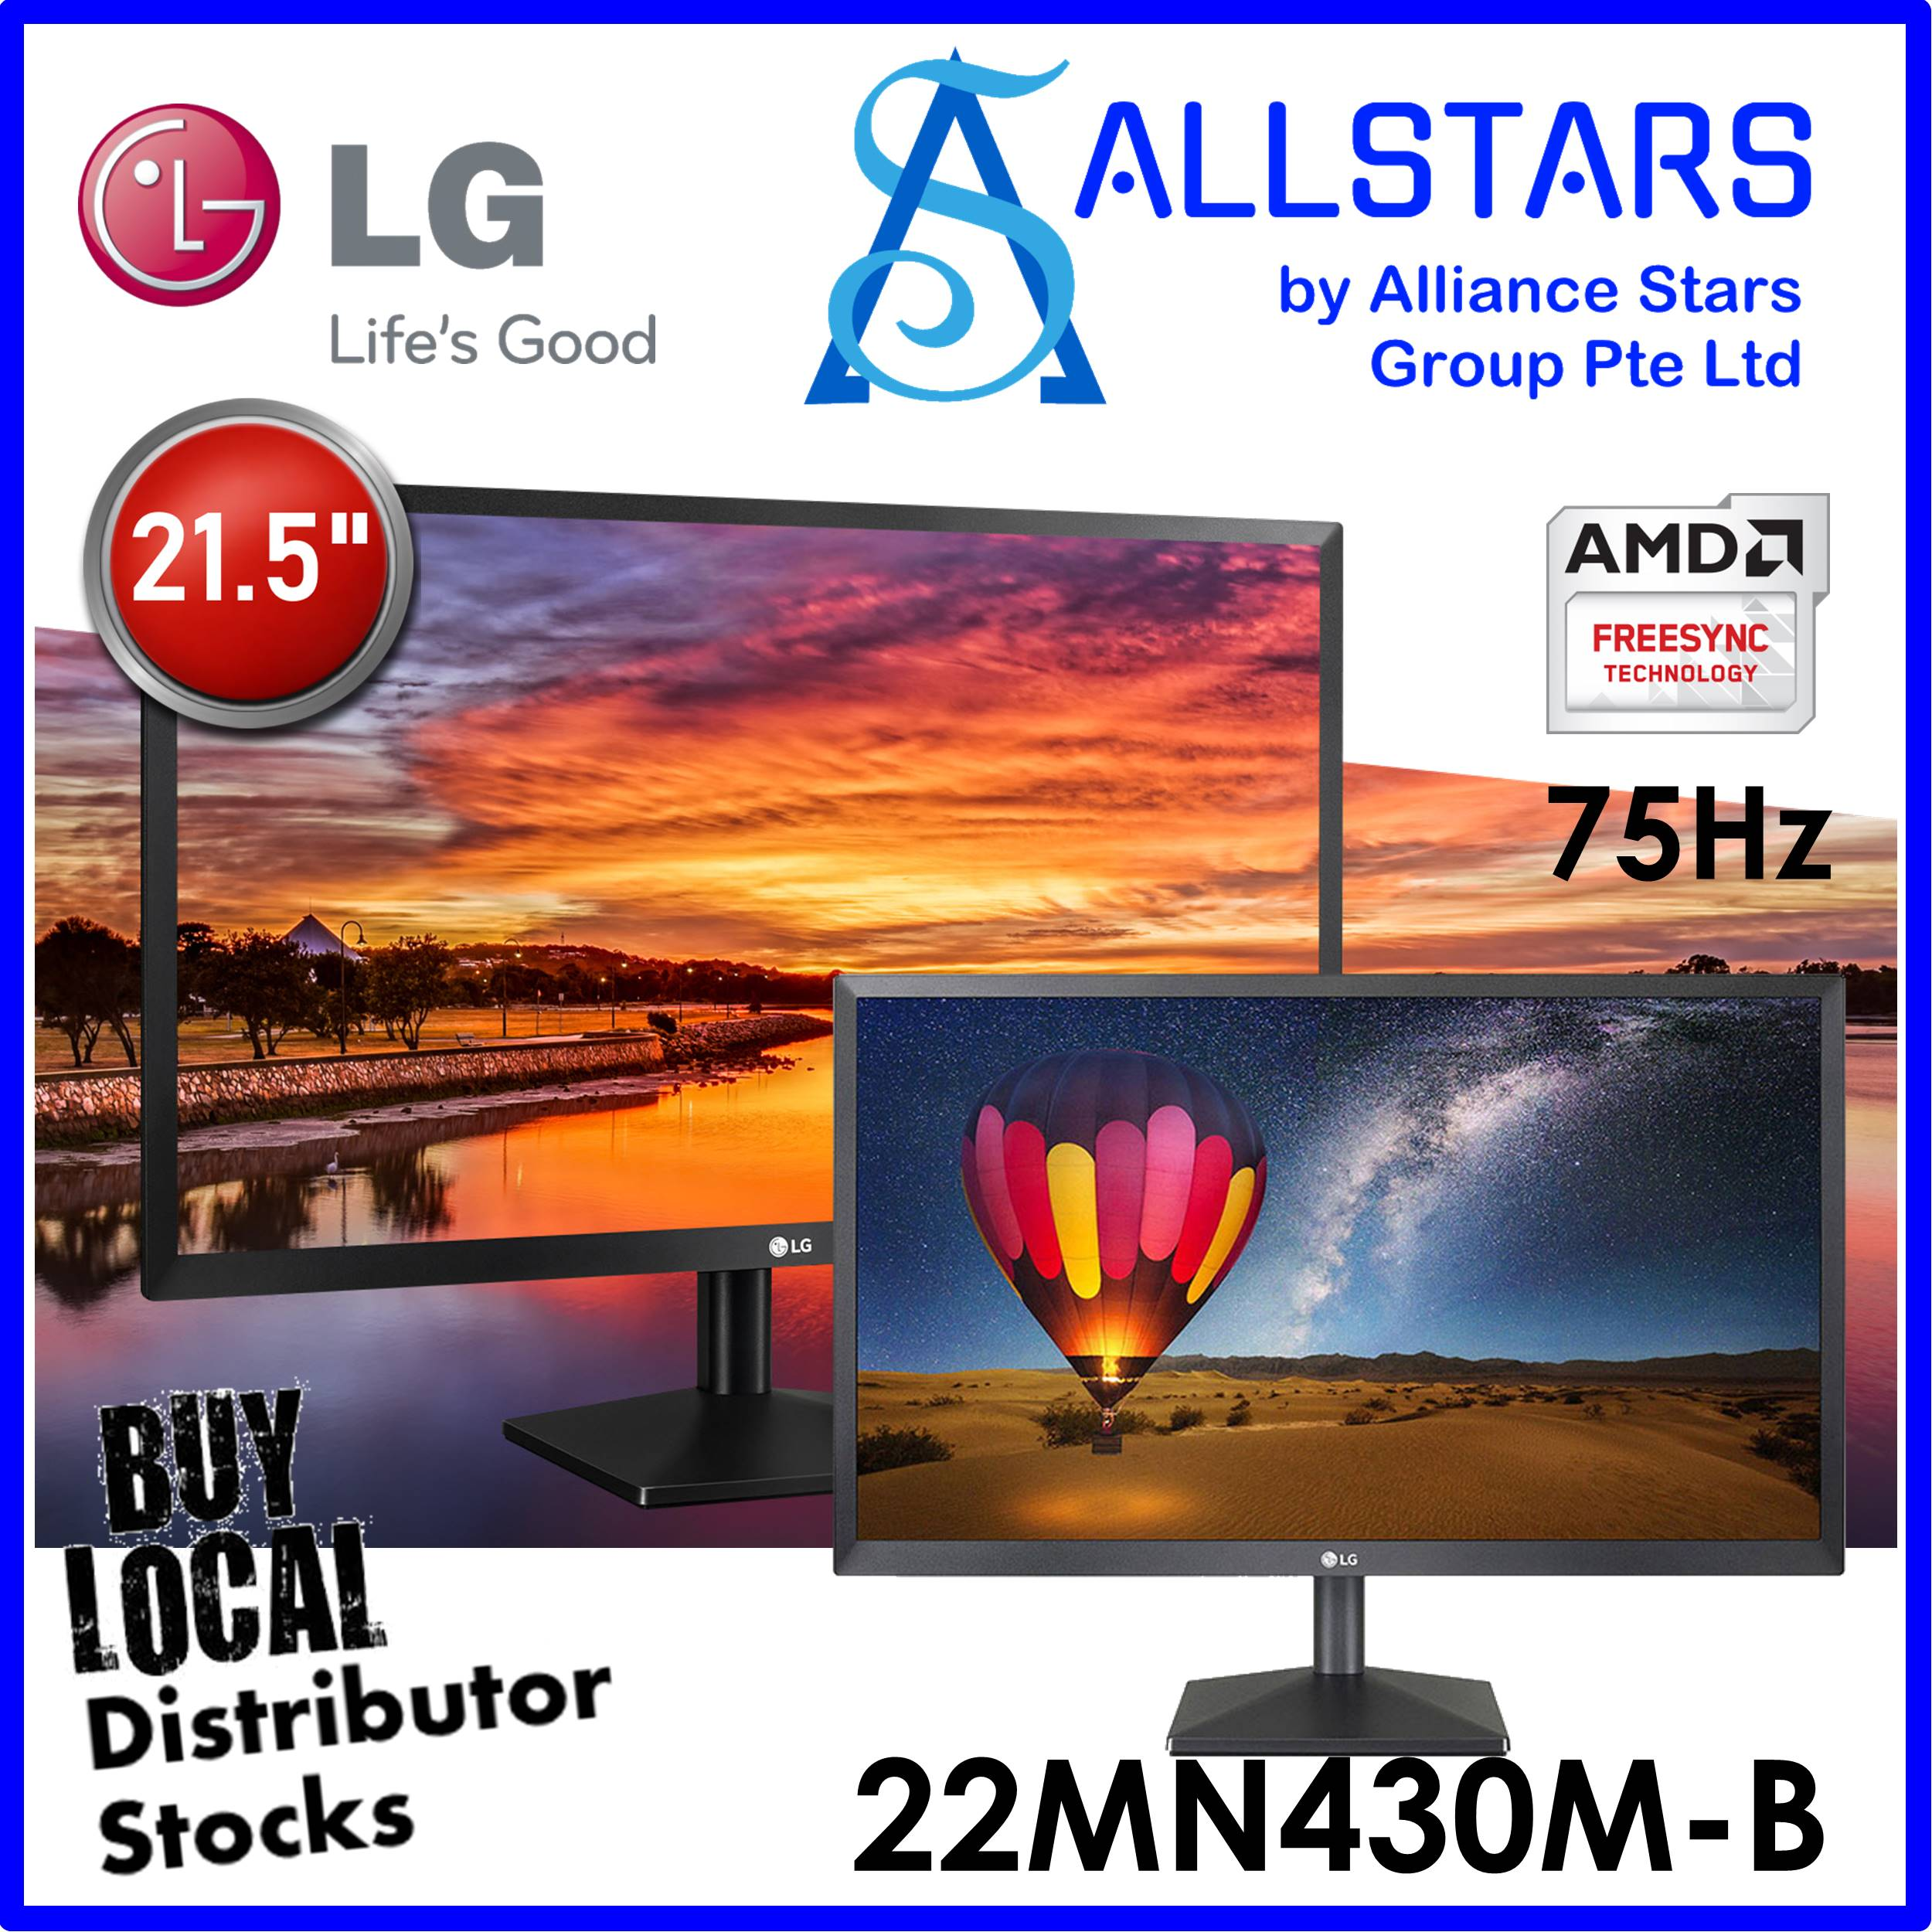 (allstars : We Are Back / Display Promo) Lg 21.5 Inch 22mn430m-B Full Hd Ips Monitor / 75hz / Freesync / Hdmi X2 + Vga / Vesa Mount Compatible 75x75mm (warranty 3years With Lg Sg).